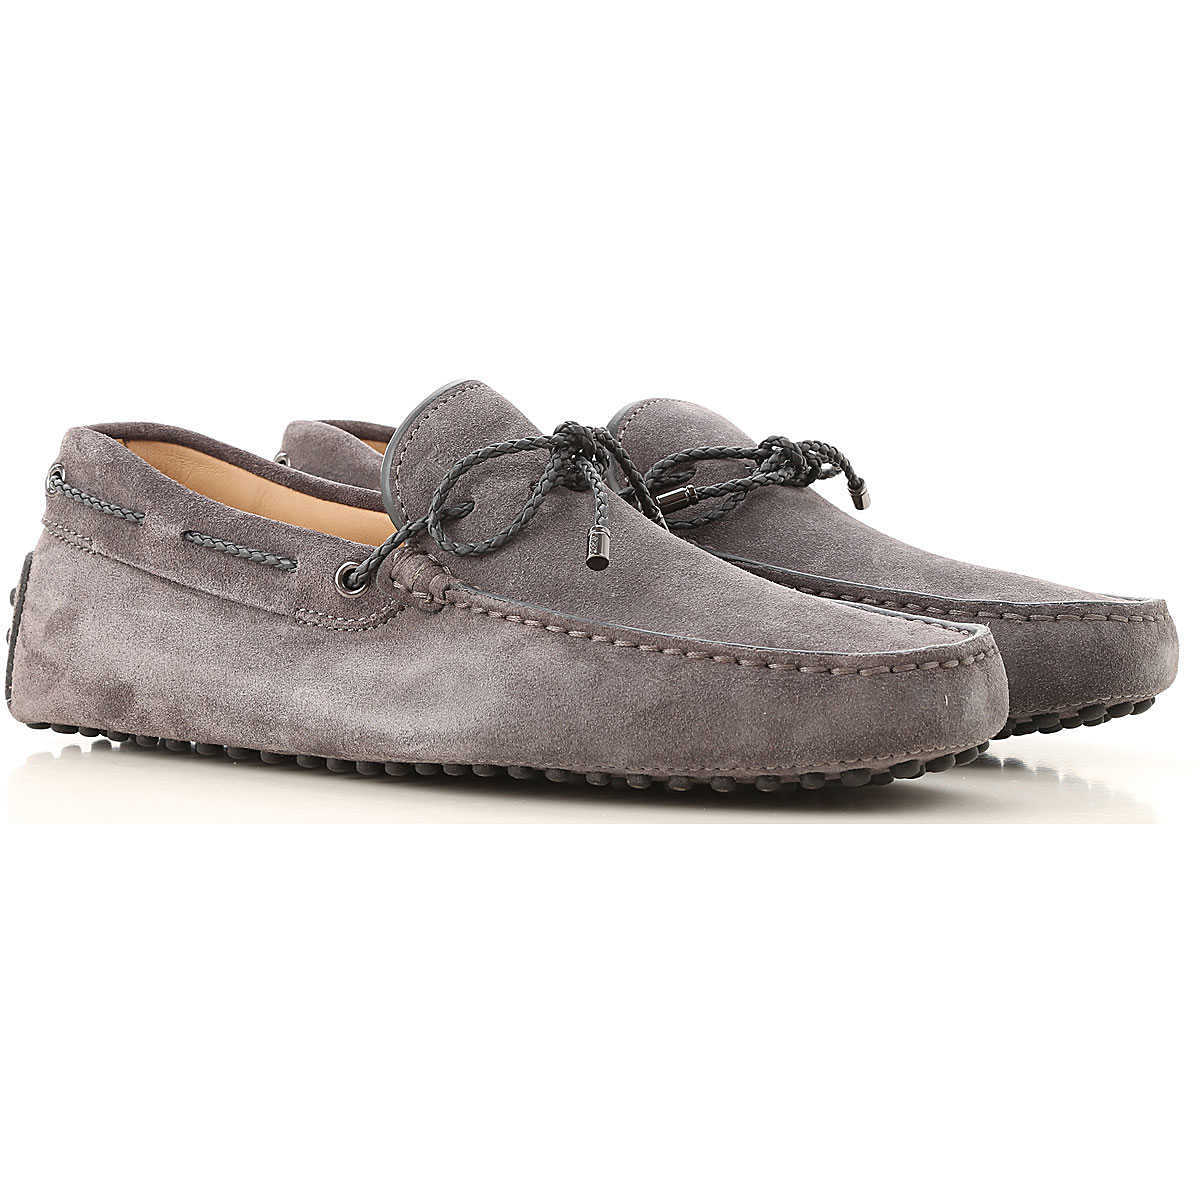 Tods Loafers for Men Grey Canada - GOOFASH - Mens LOAFERS